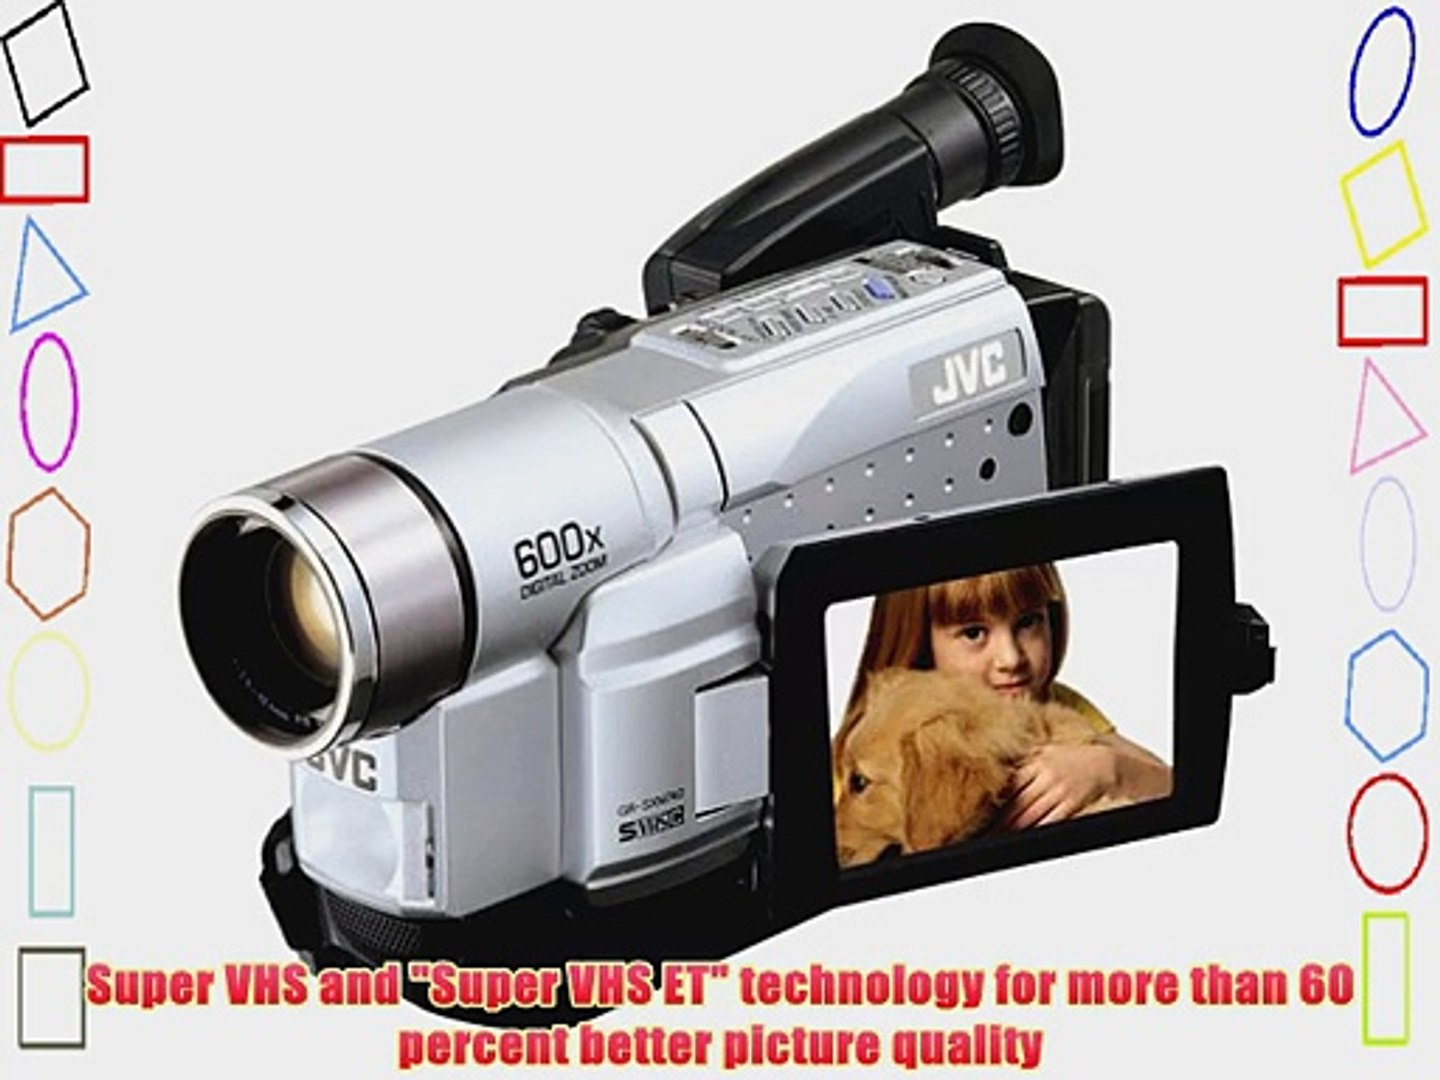 Jvc Gr Sxm740u Super Vhs C Camcorder With 3 5 Lcd Video Dailymotion